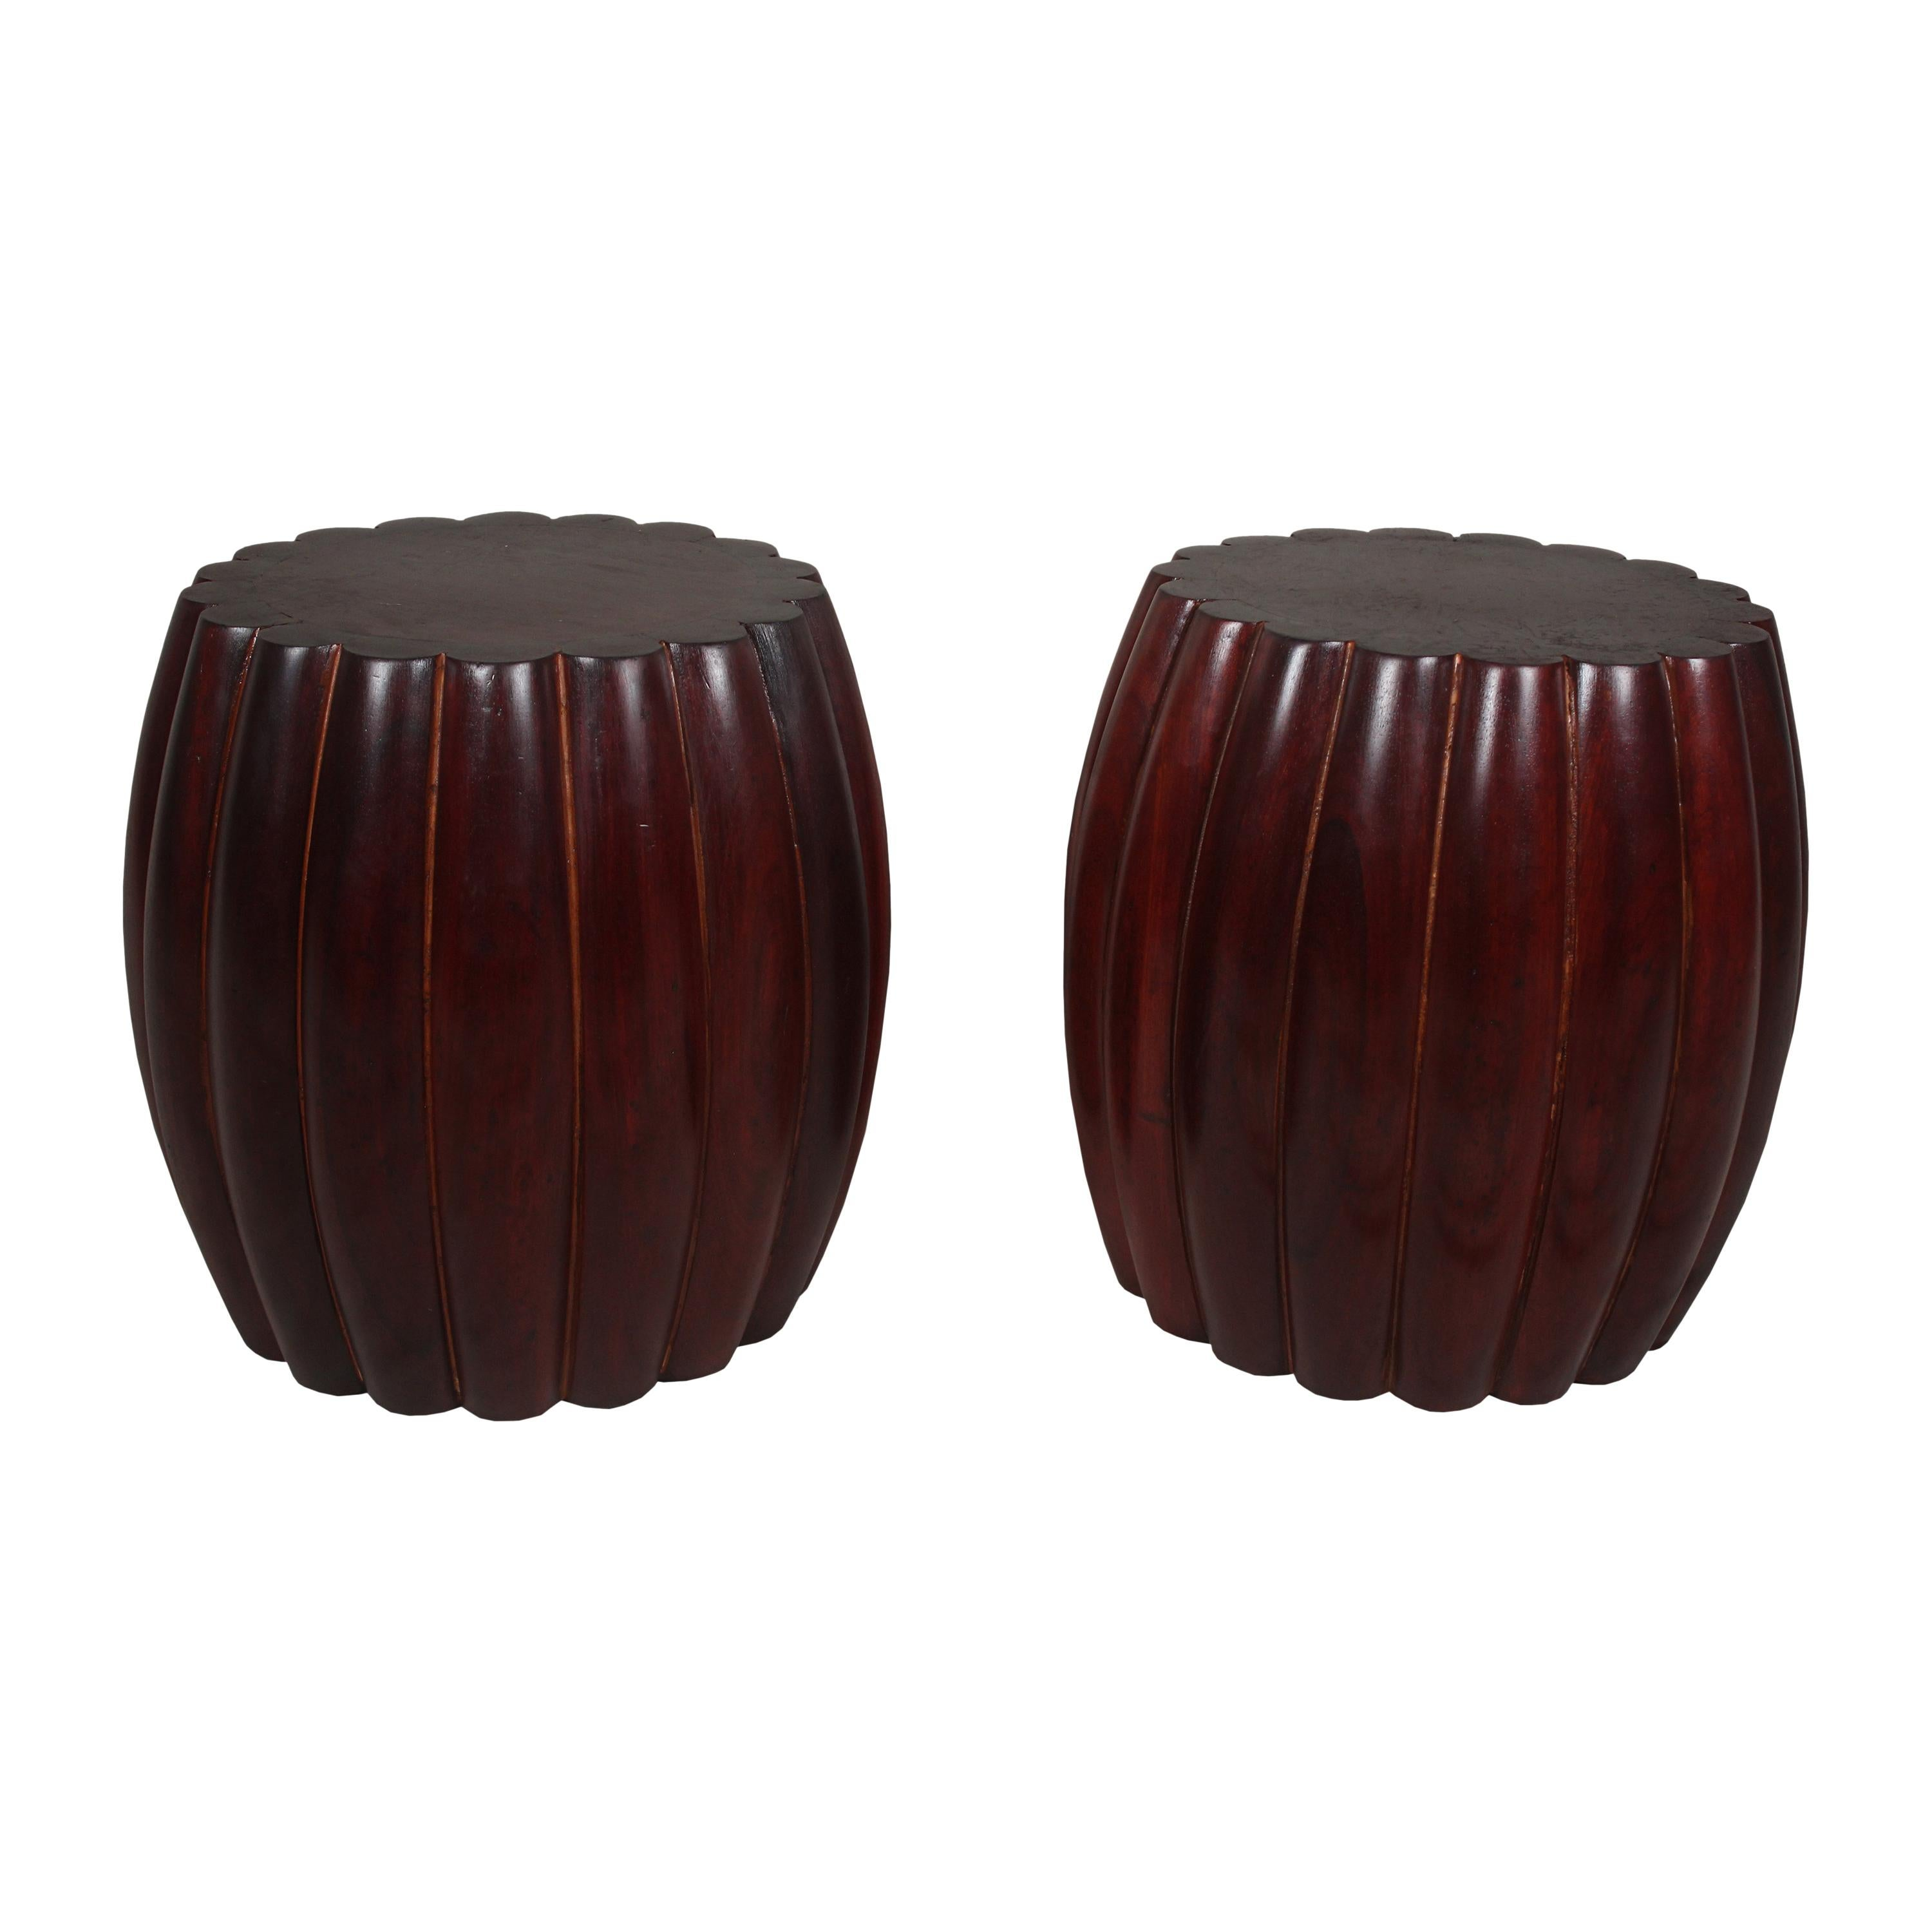 Pair of Scallop-Edge Rosewood Side Tables or Stools